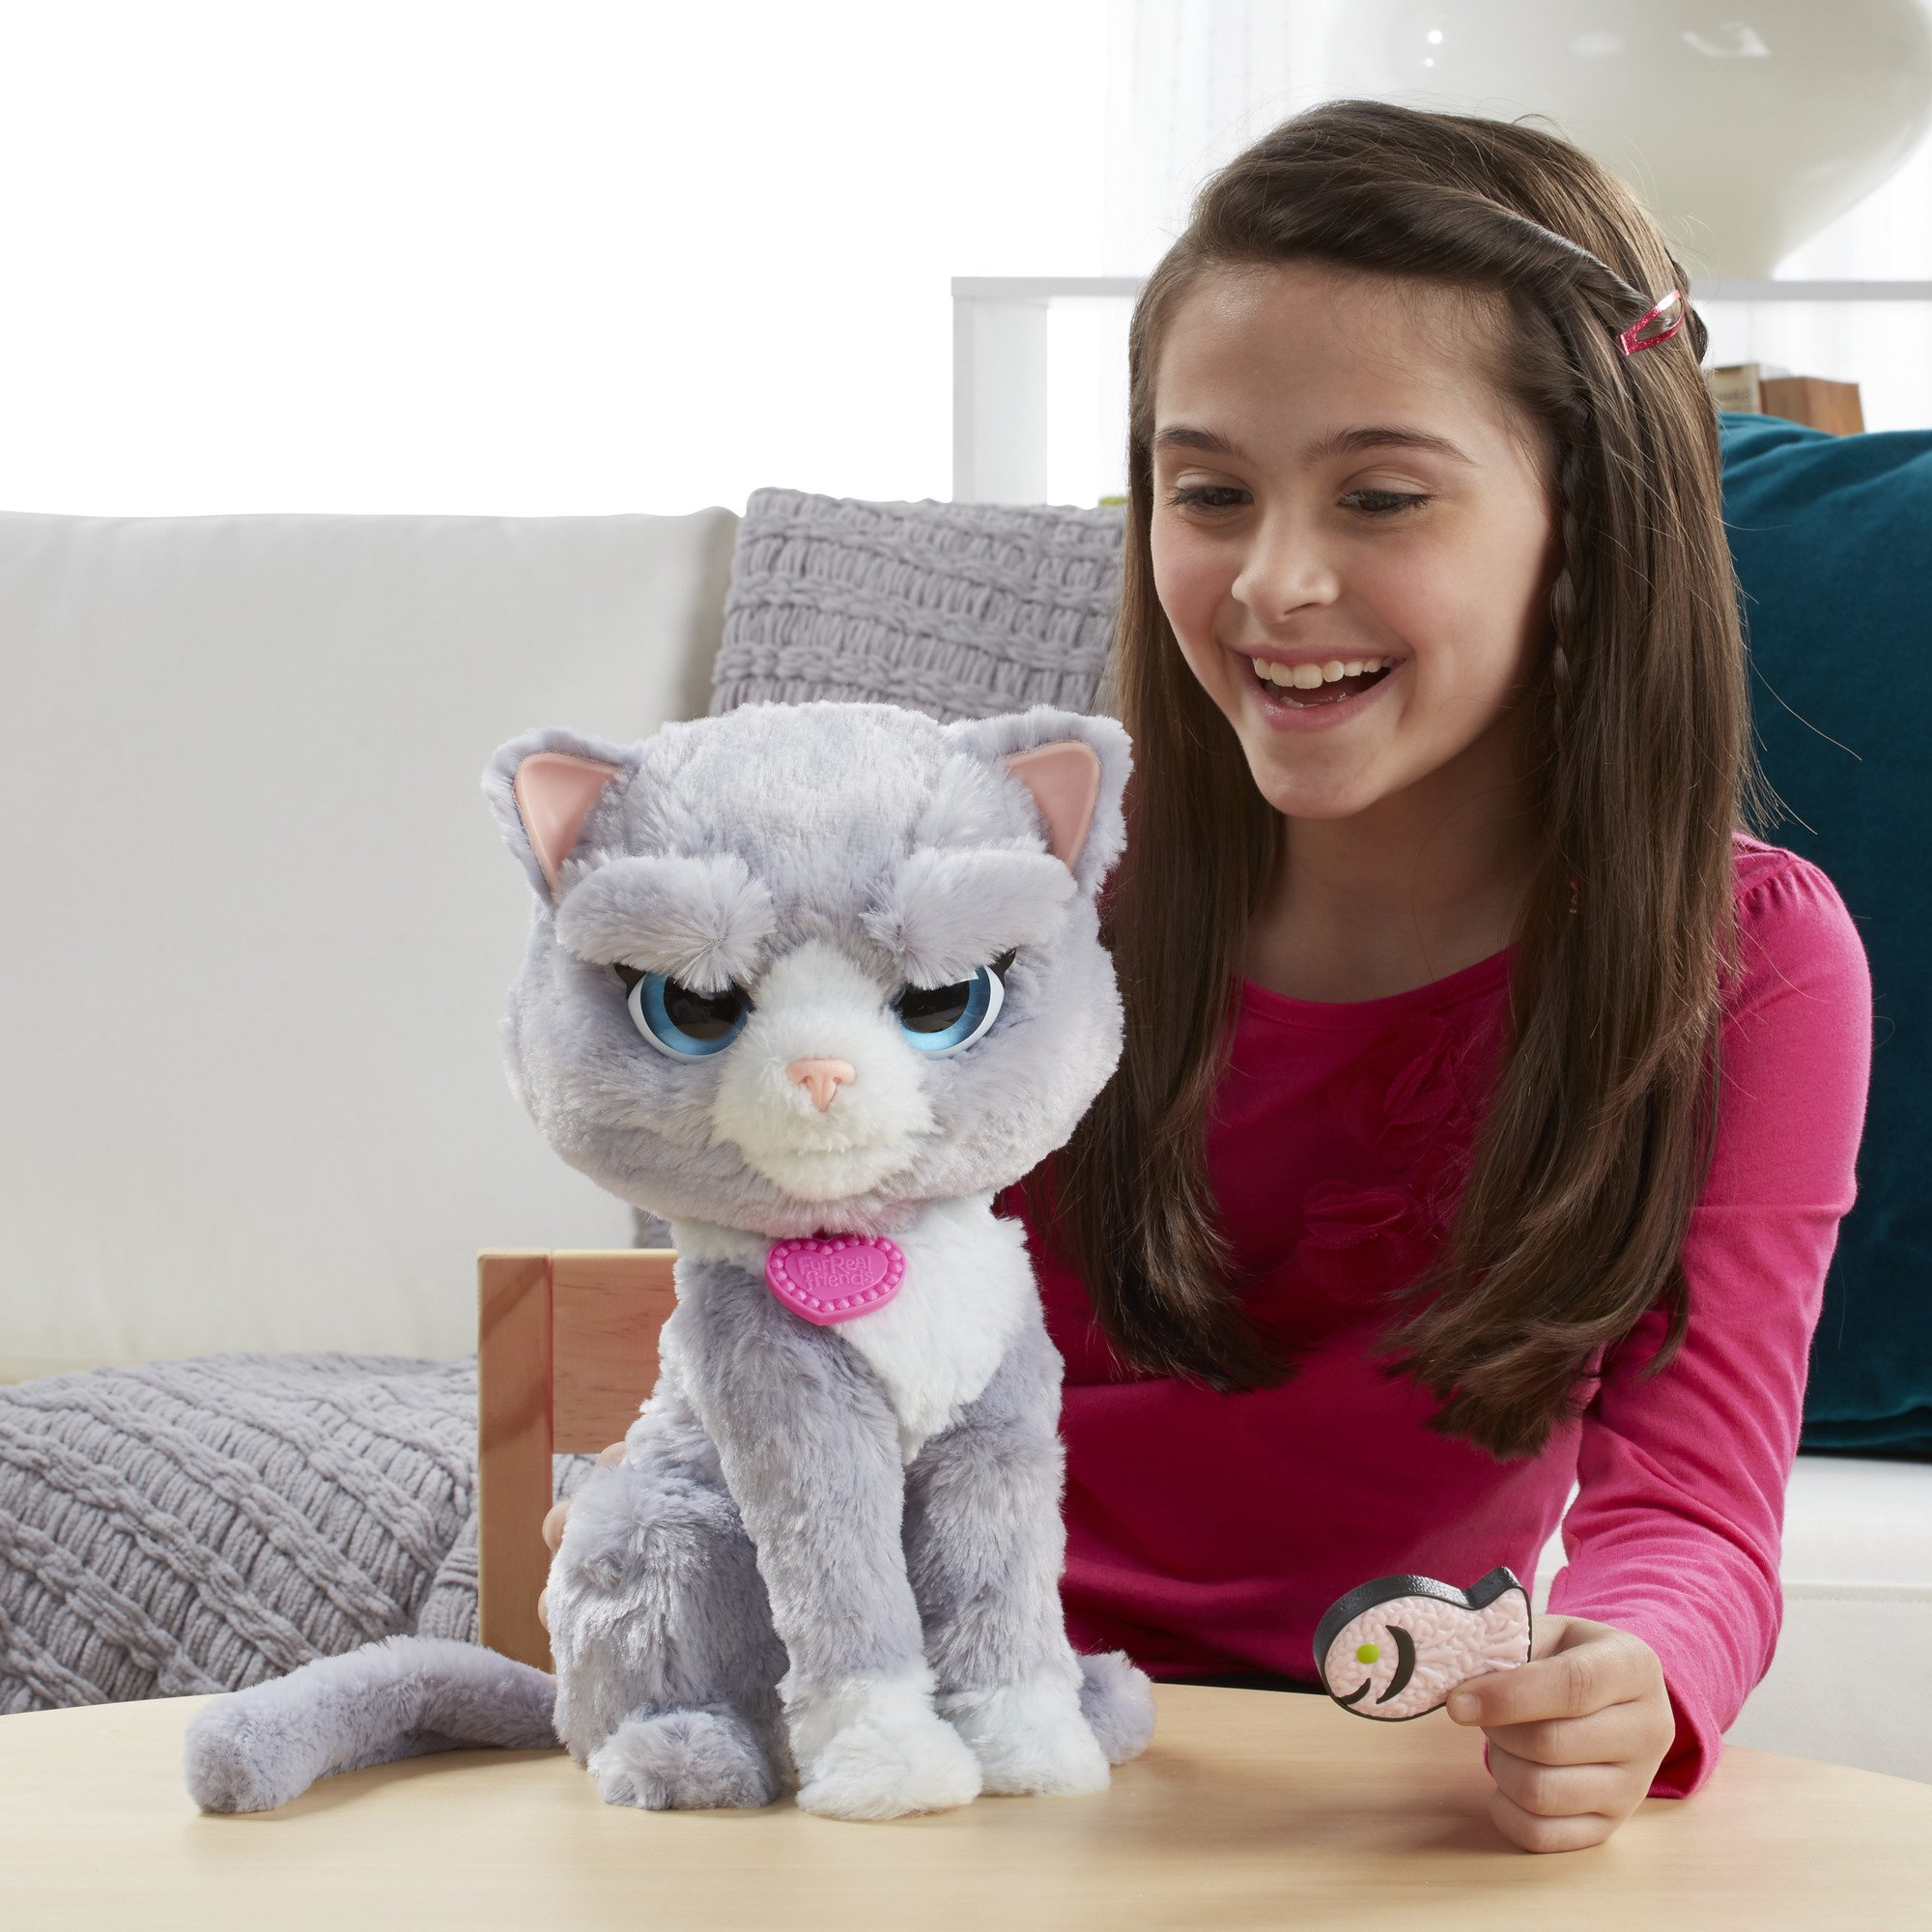 FurReal B5936AF1 Bootsie Interactive Plush Kitty Toy, Ages 4 & Up by FurReal (Image #11)